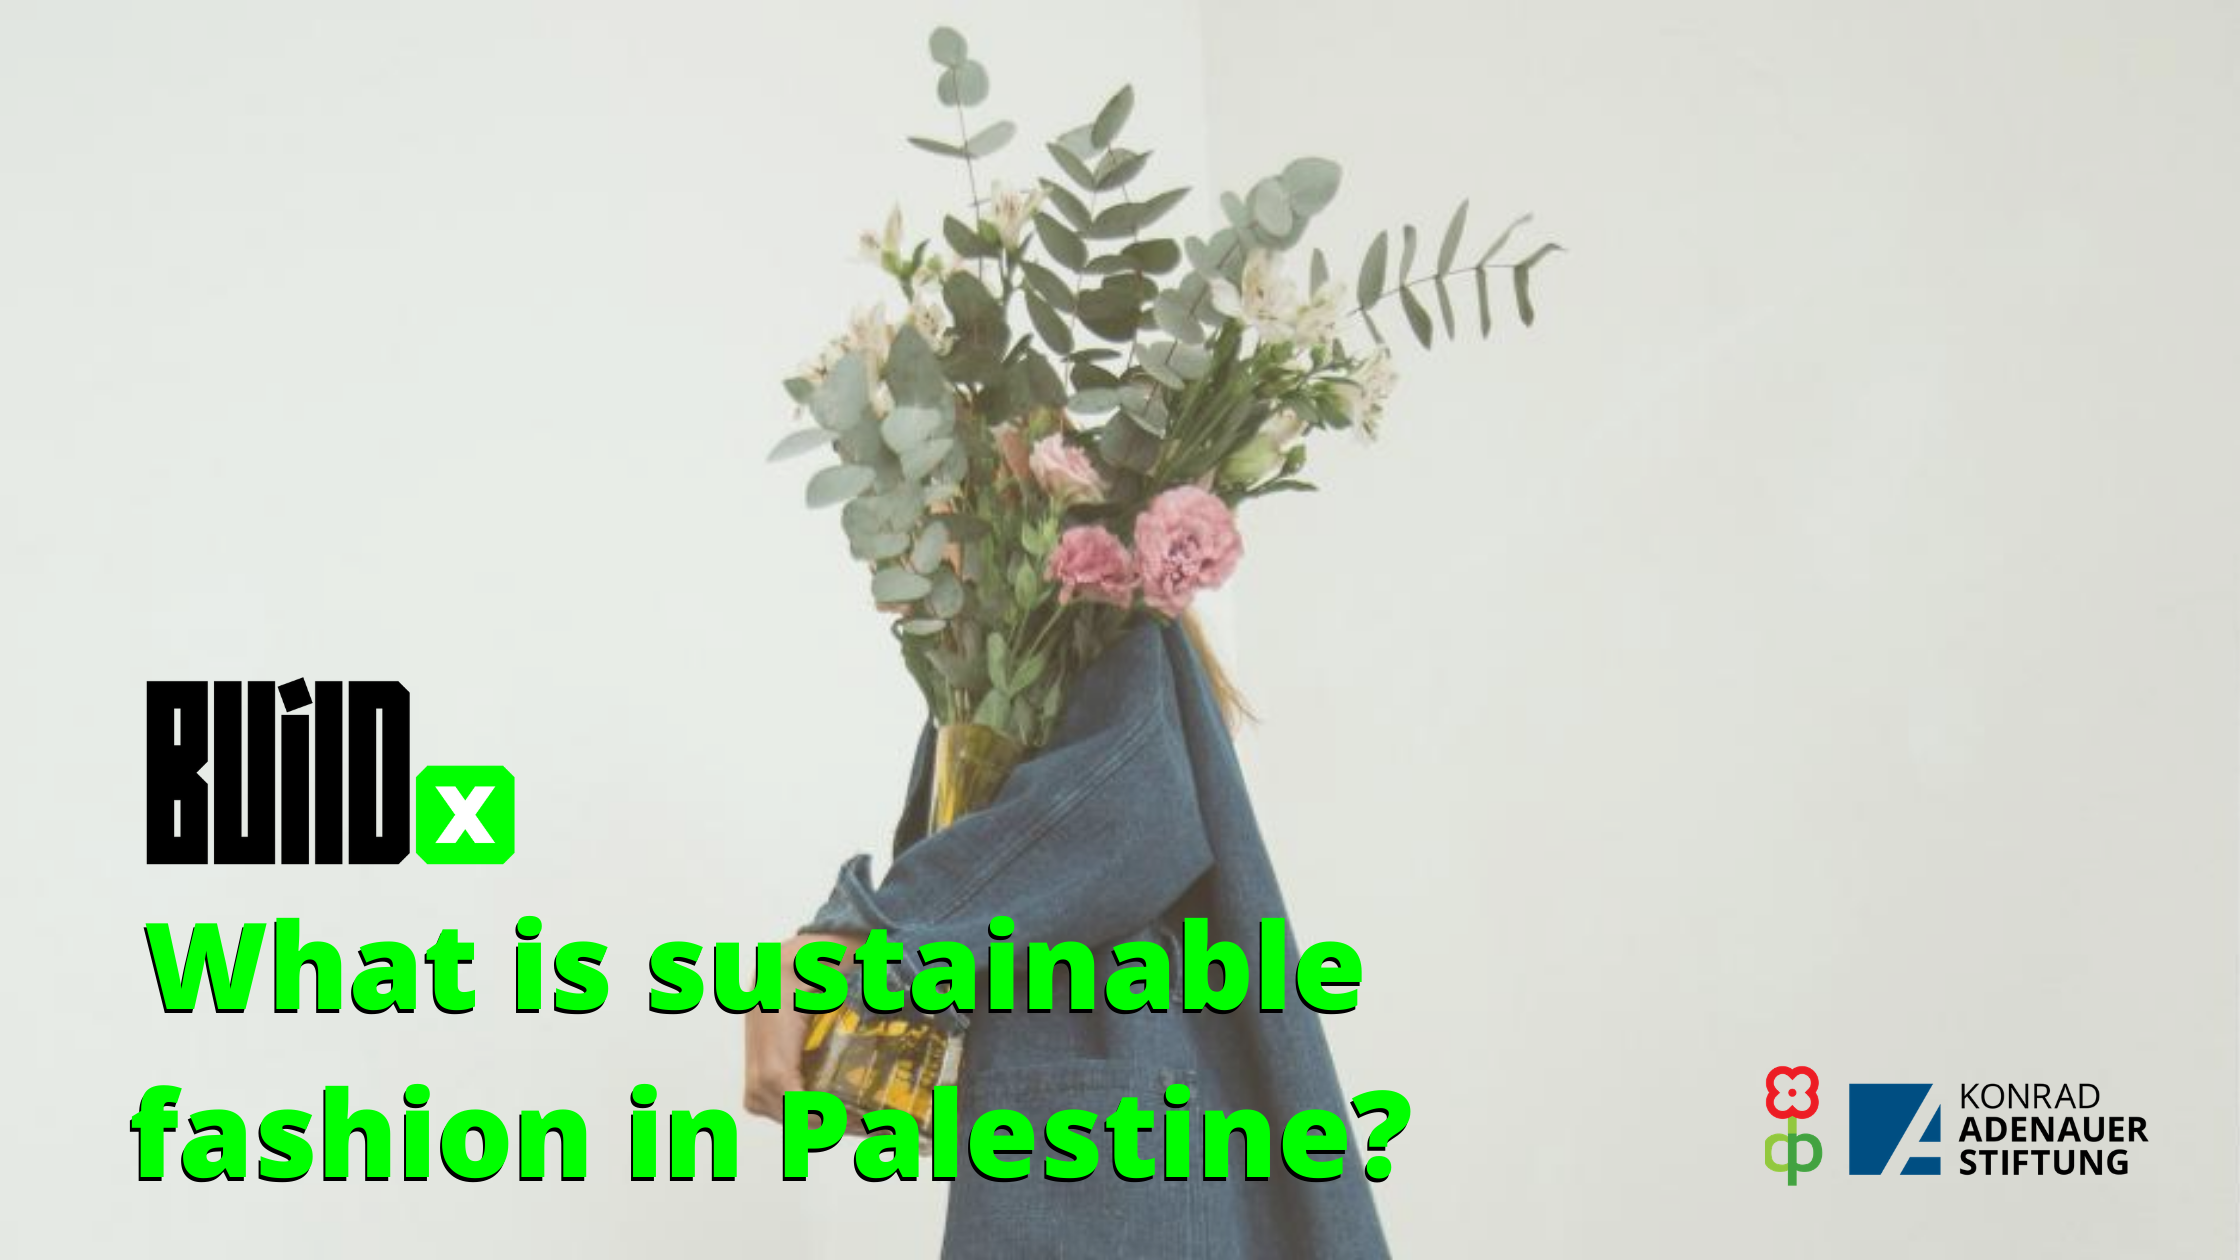 What does sustainable fashion mean in Palestine?